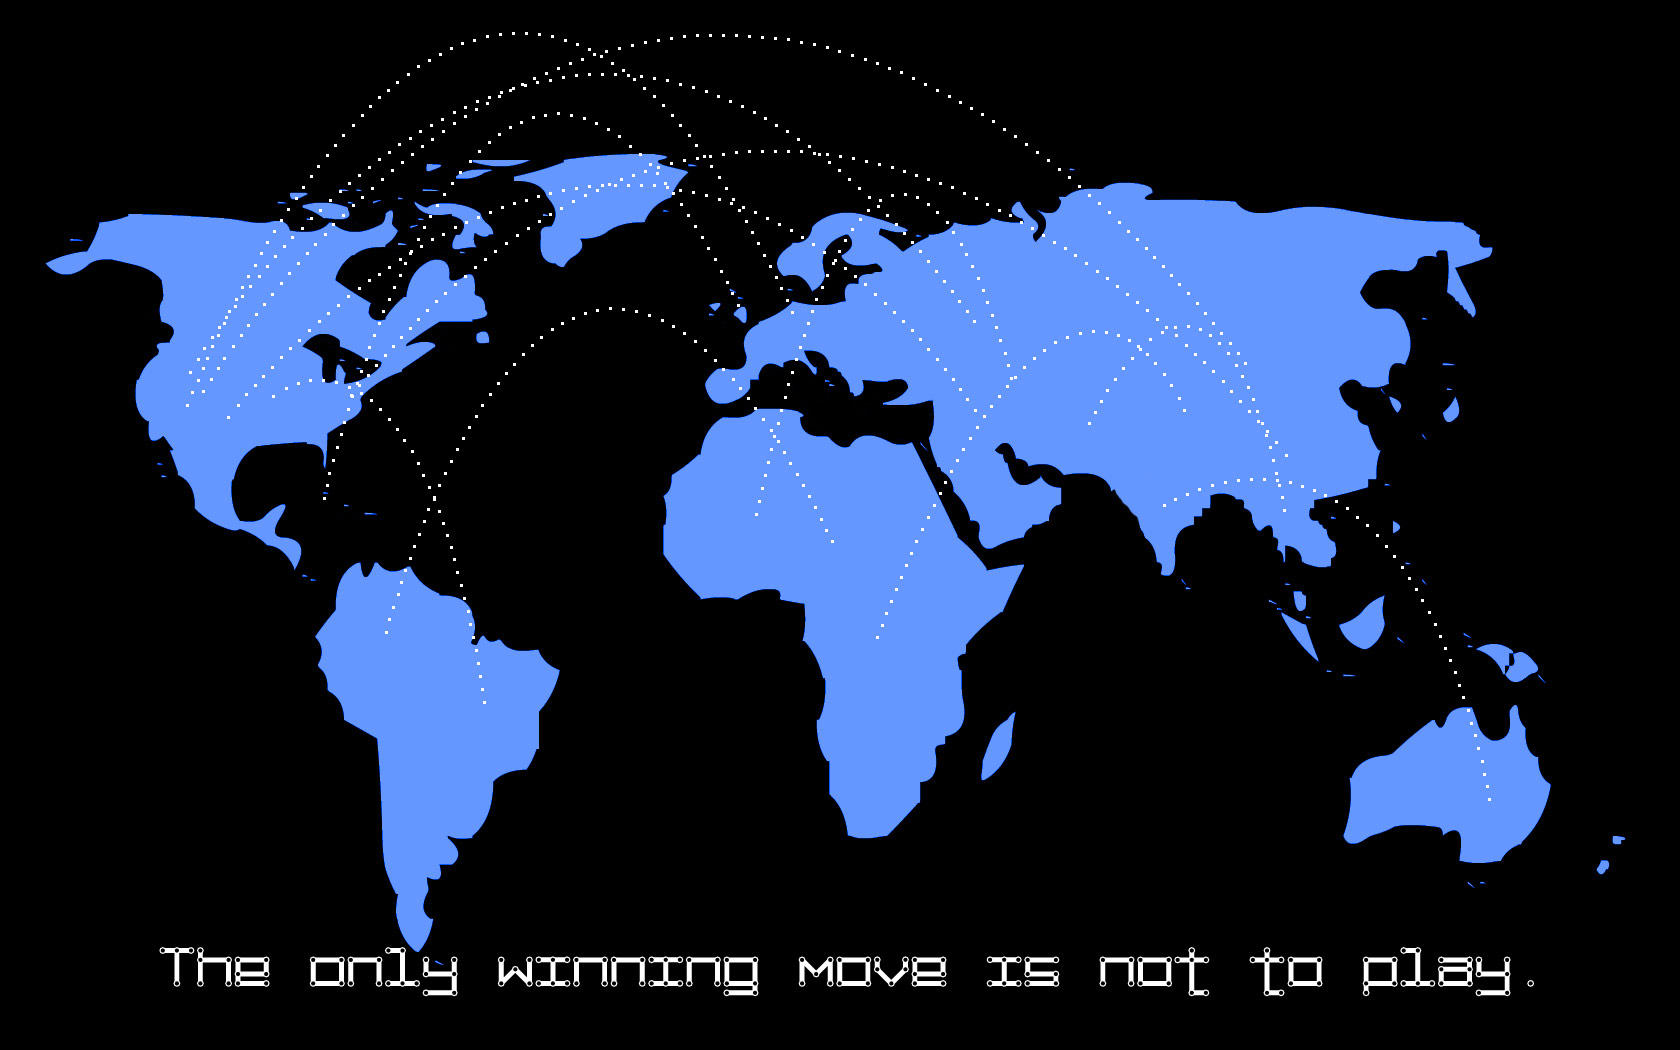 Global Thermonuclear War by ST4TIK on DeviantArt